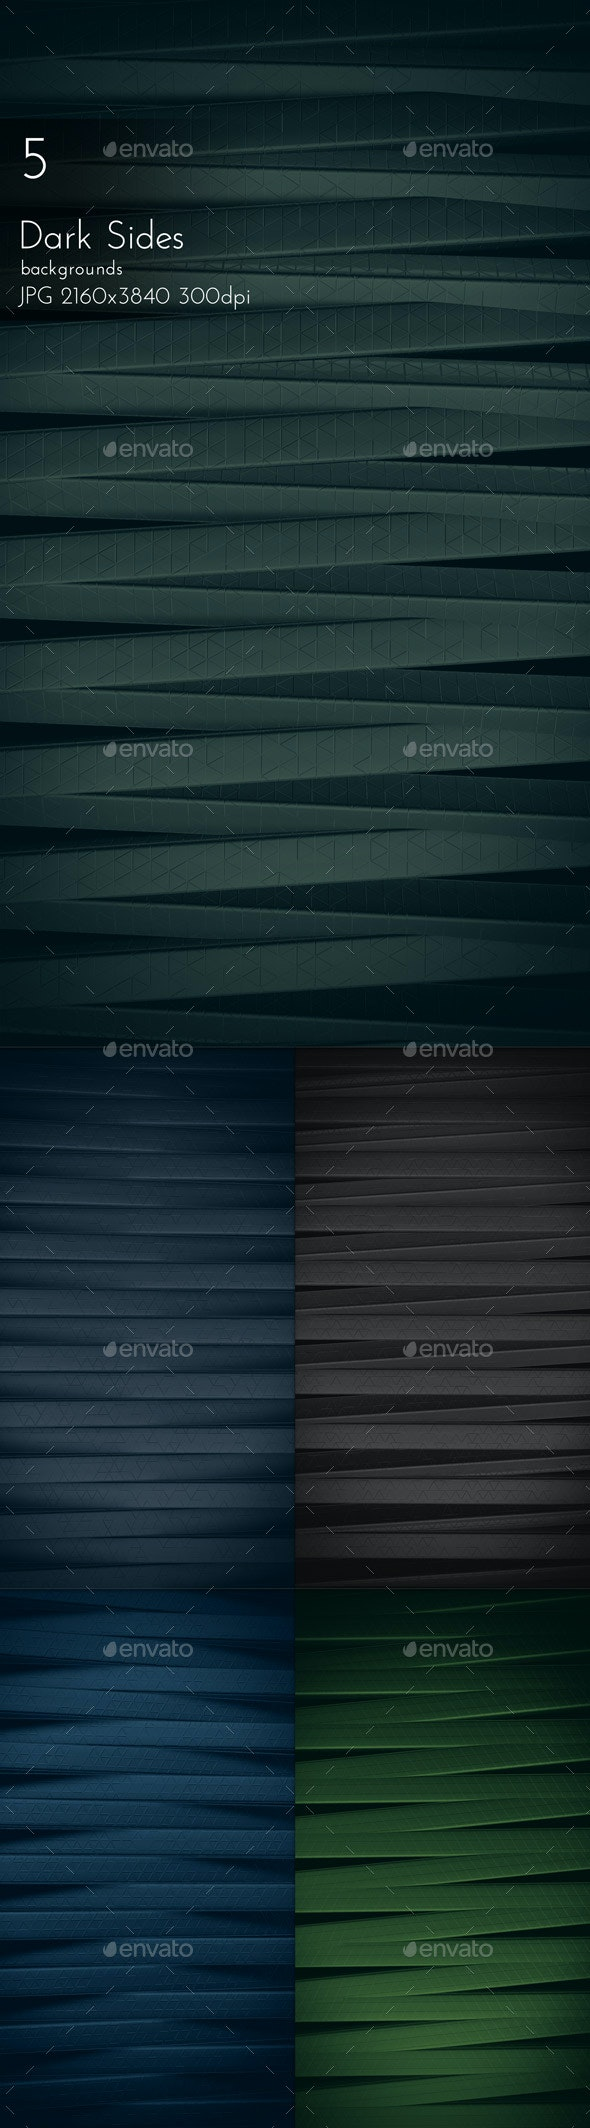 Dark Sides Background - Patterns Backgrounds